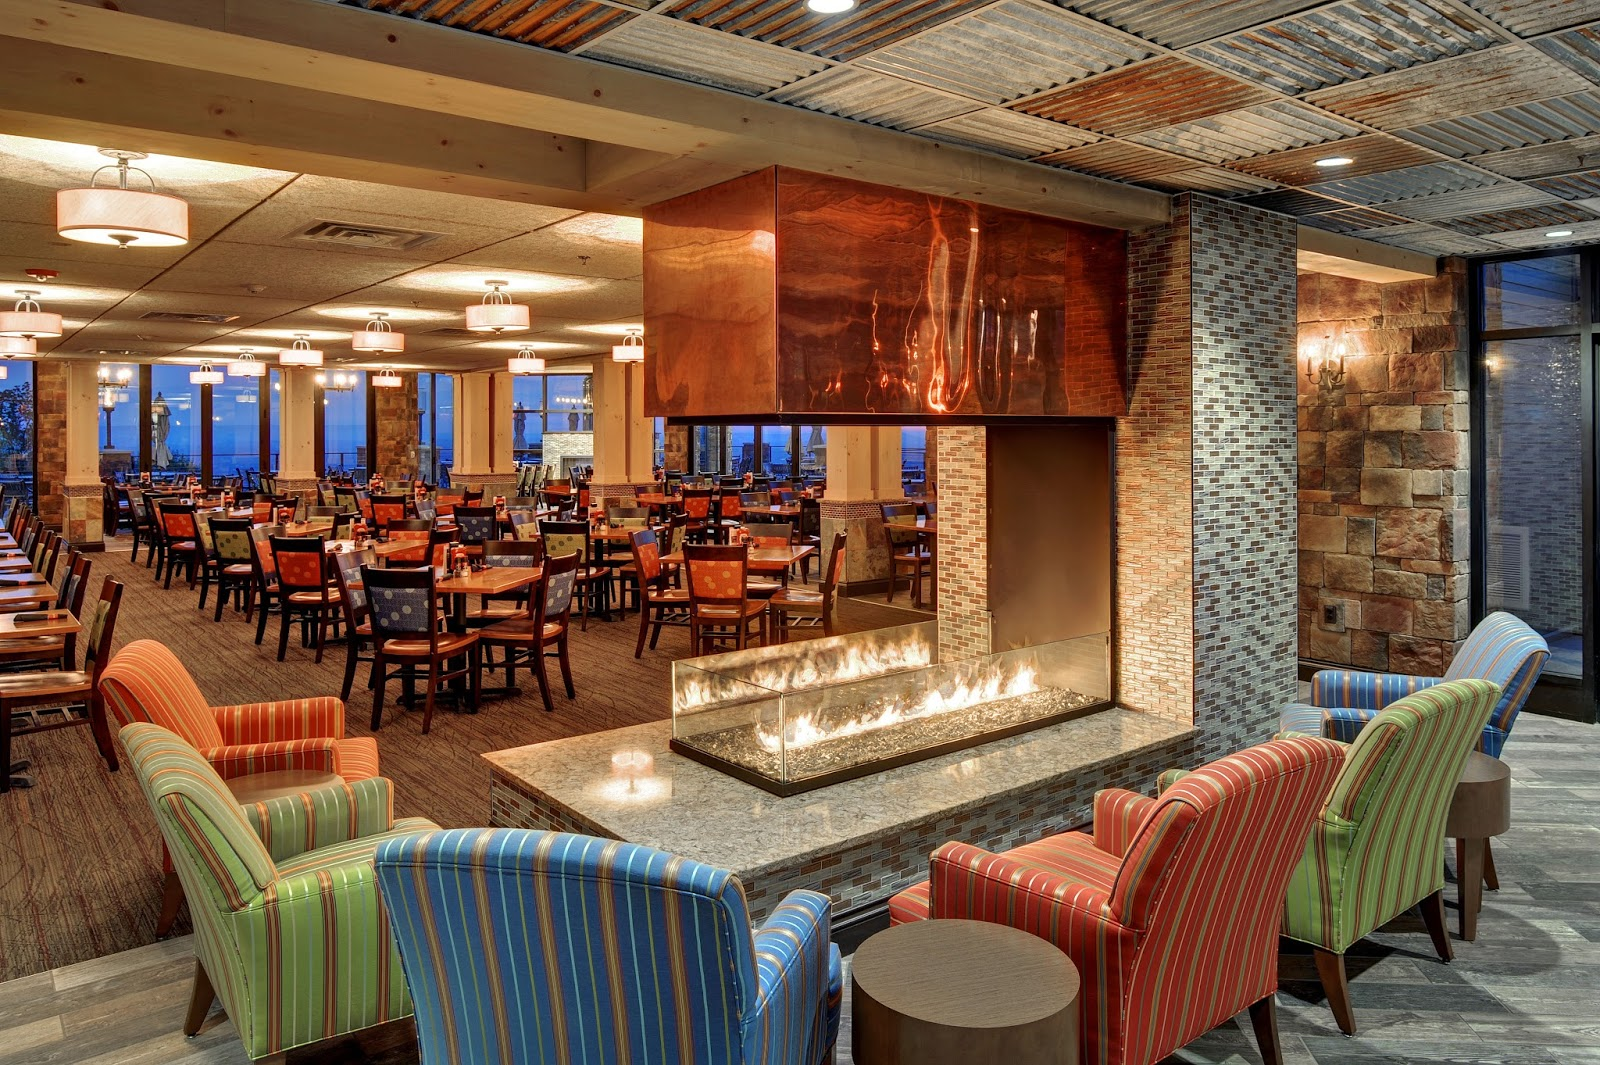 Fire place at Blue Mountain Resort